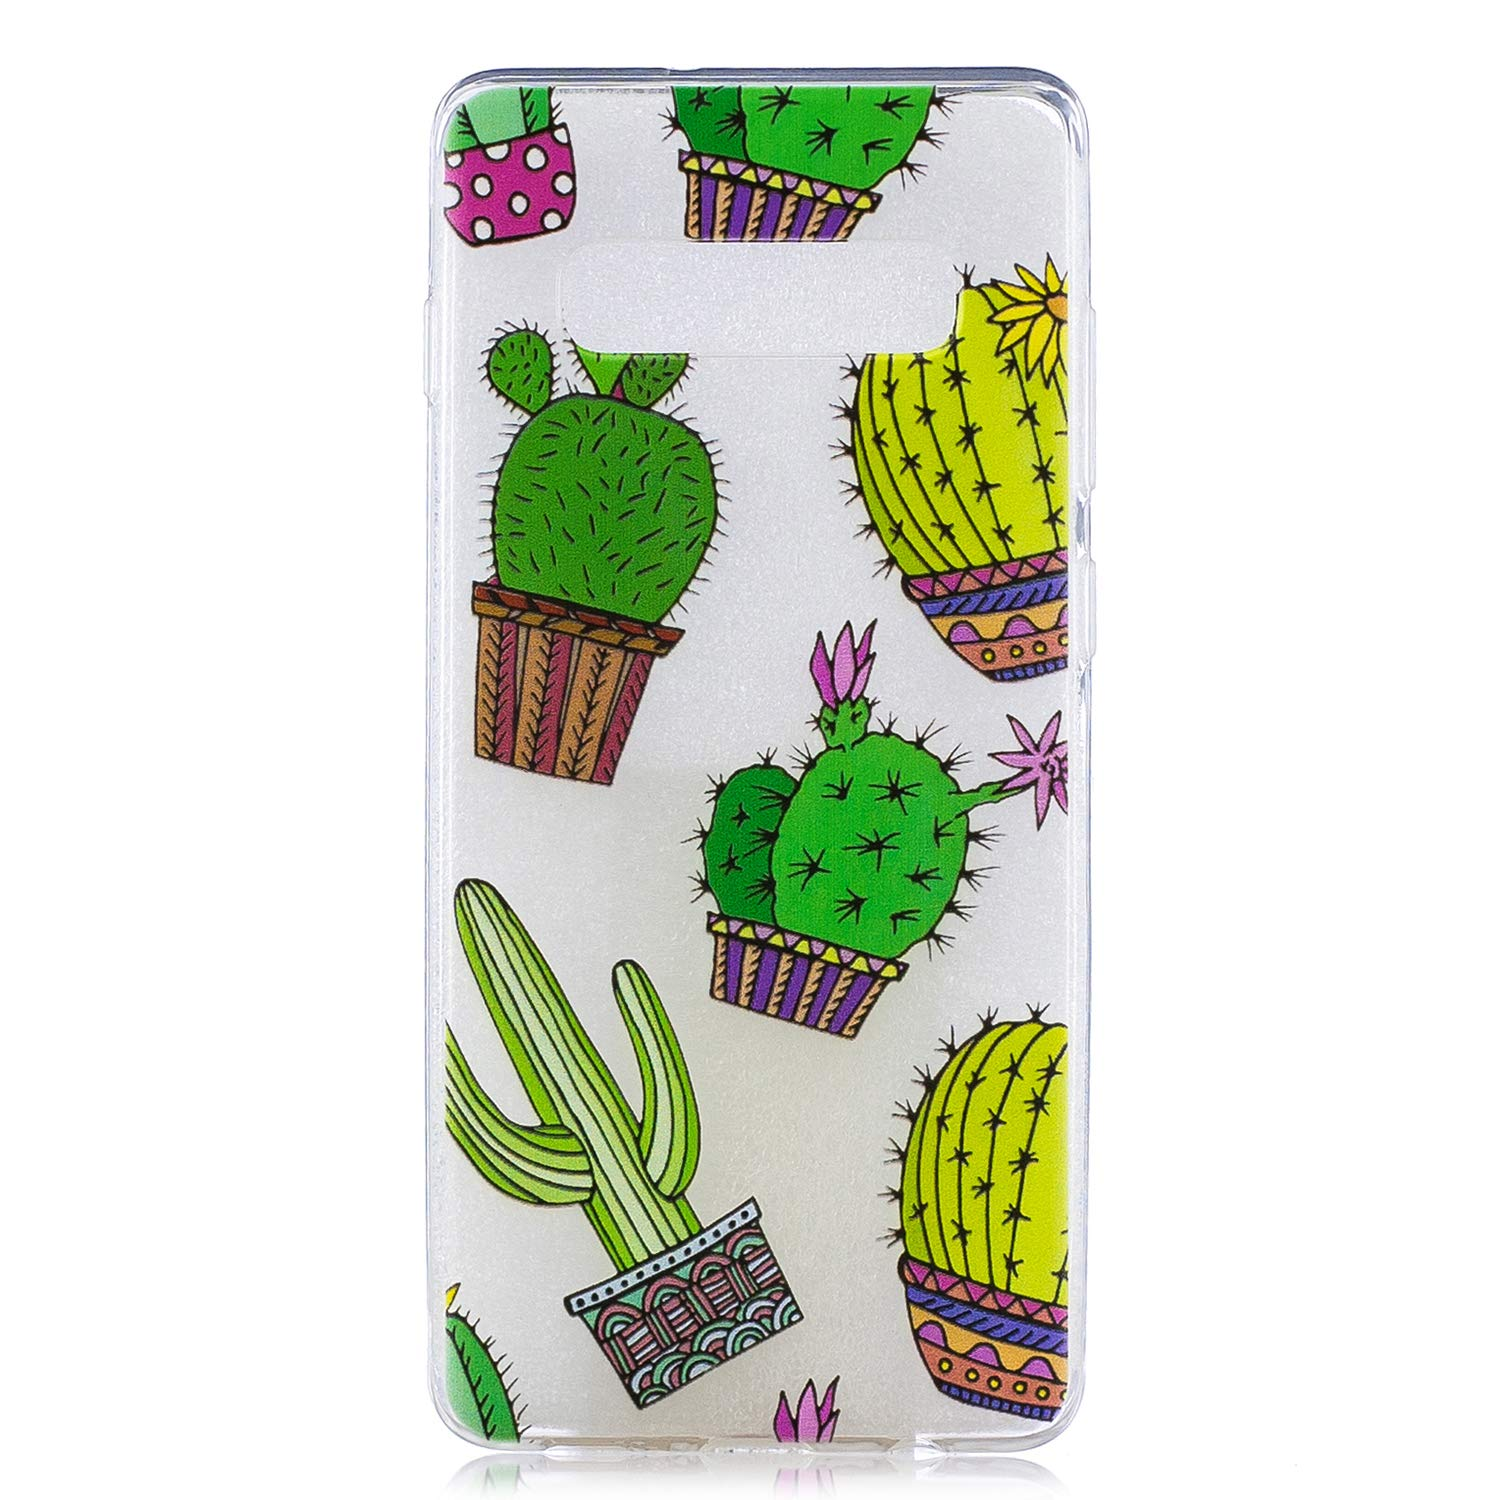 Galaxy S10e Case, for S10e 5.8'', MerKuyom Lightweight [Clear Crystal Transparent] Slim-Fit Flexible Gel Soft TPU Case Cover for Samsung Galaxy S10e 5.8-inch, W/Stylus (Green Cactus Pattern) by MerKuyom (Image #1)